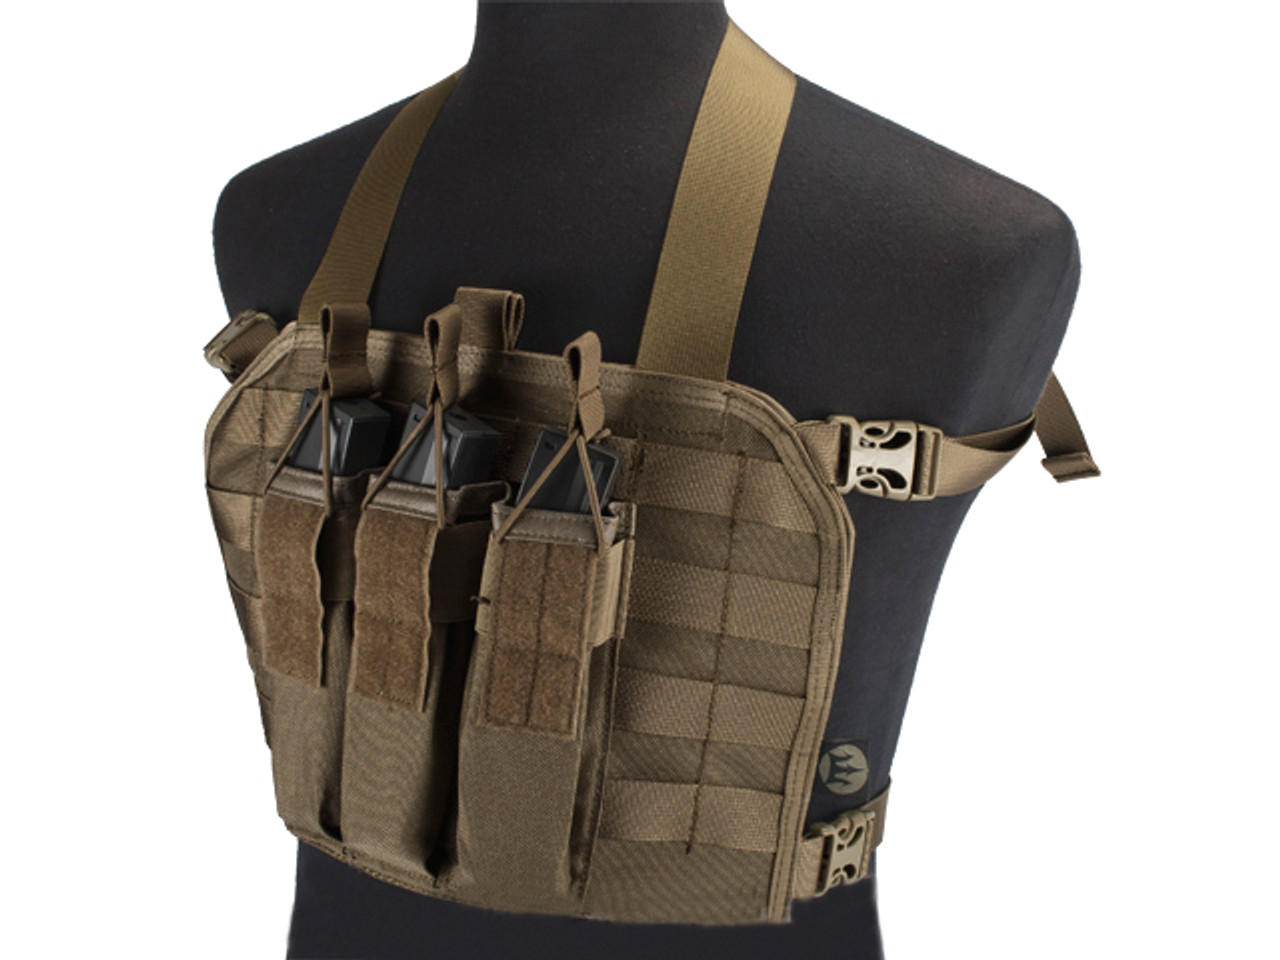 Molle Chest Rig Lightweight High Speed Vest QD Modular Sling Tool Brown